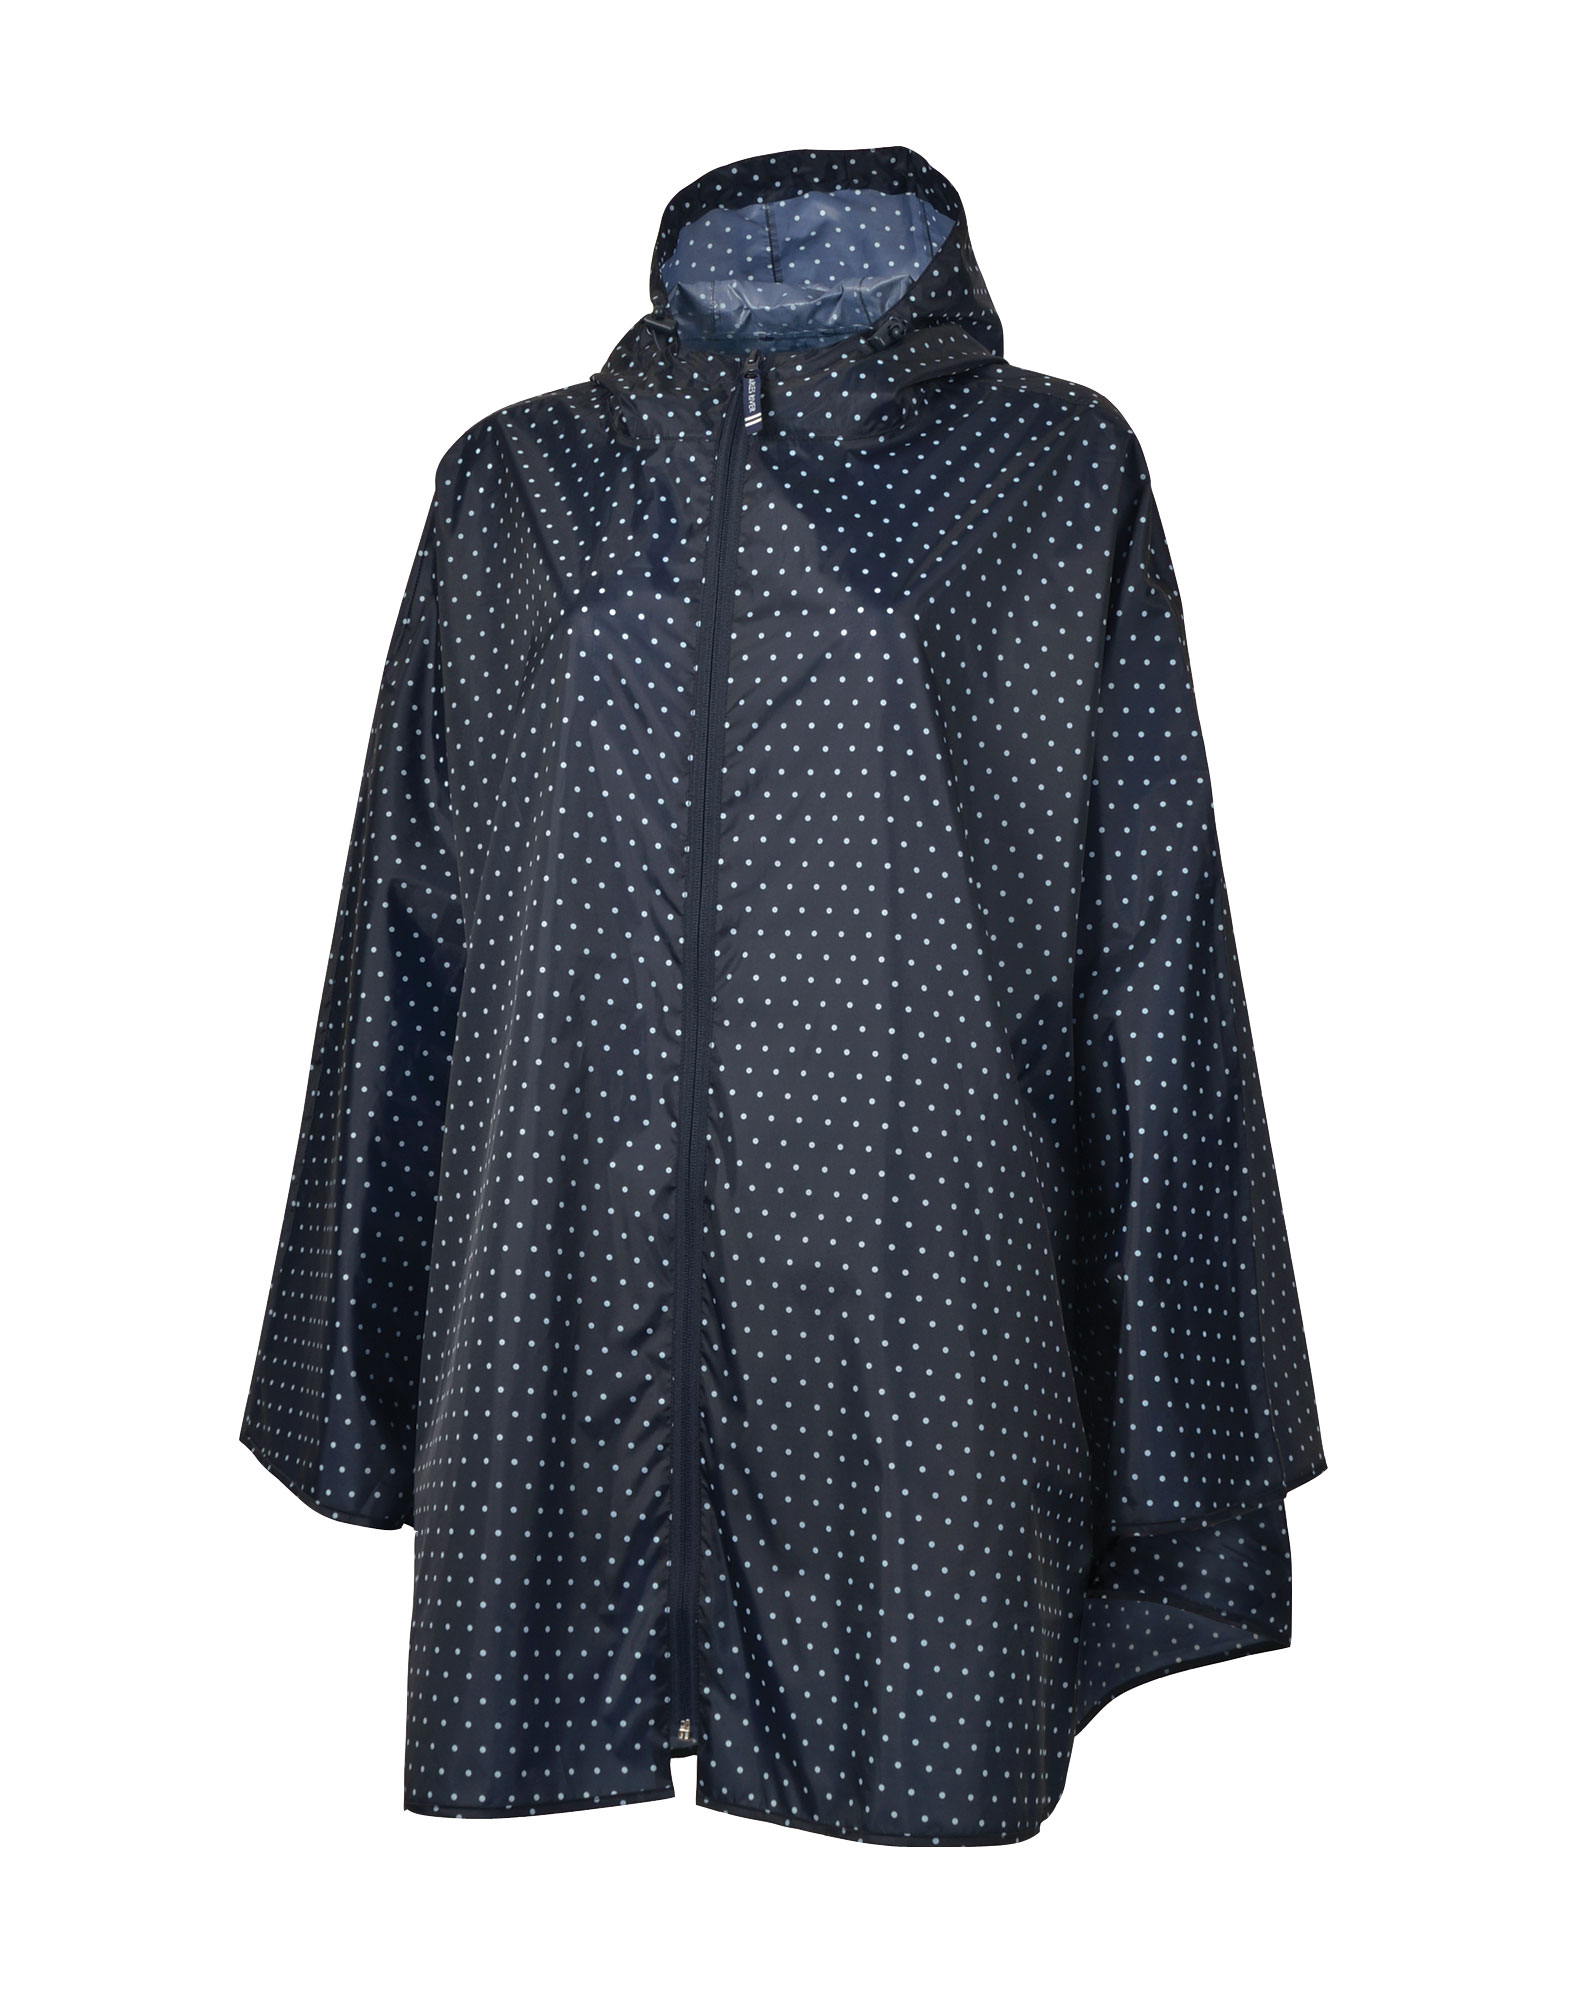 Womens Pack-N-Go® Poncho by Charles River